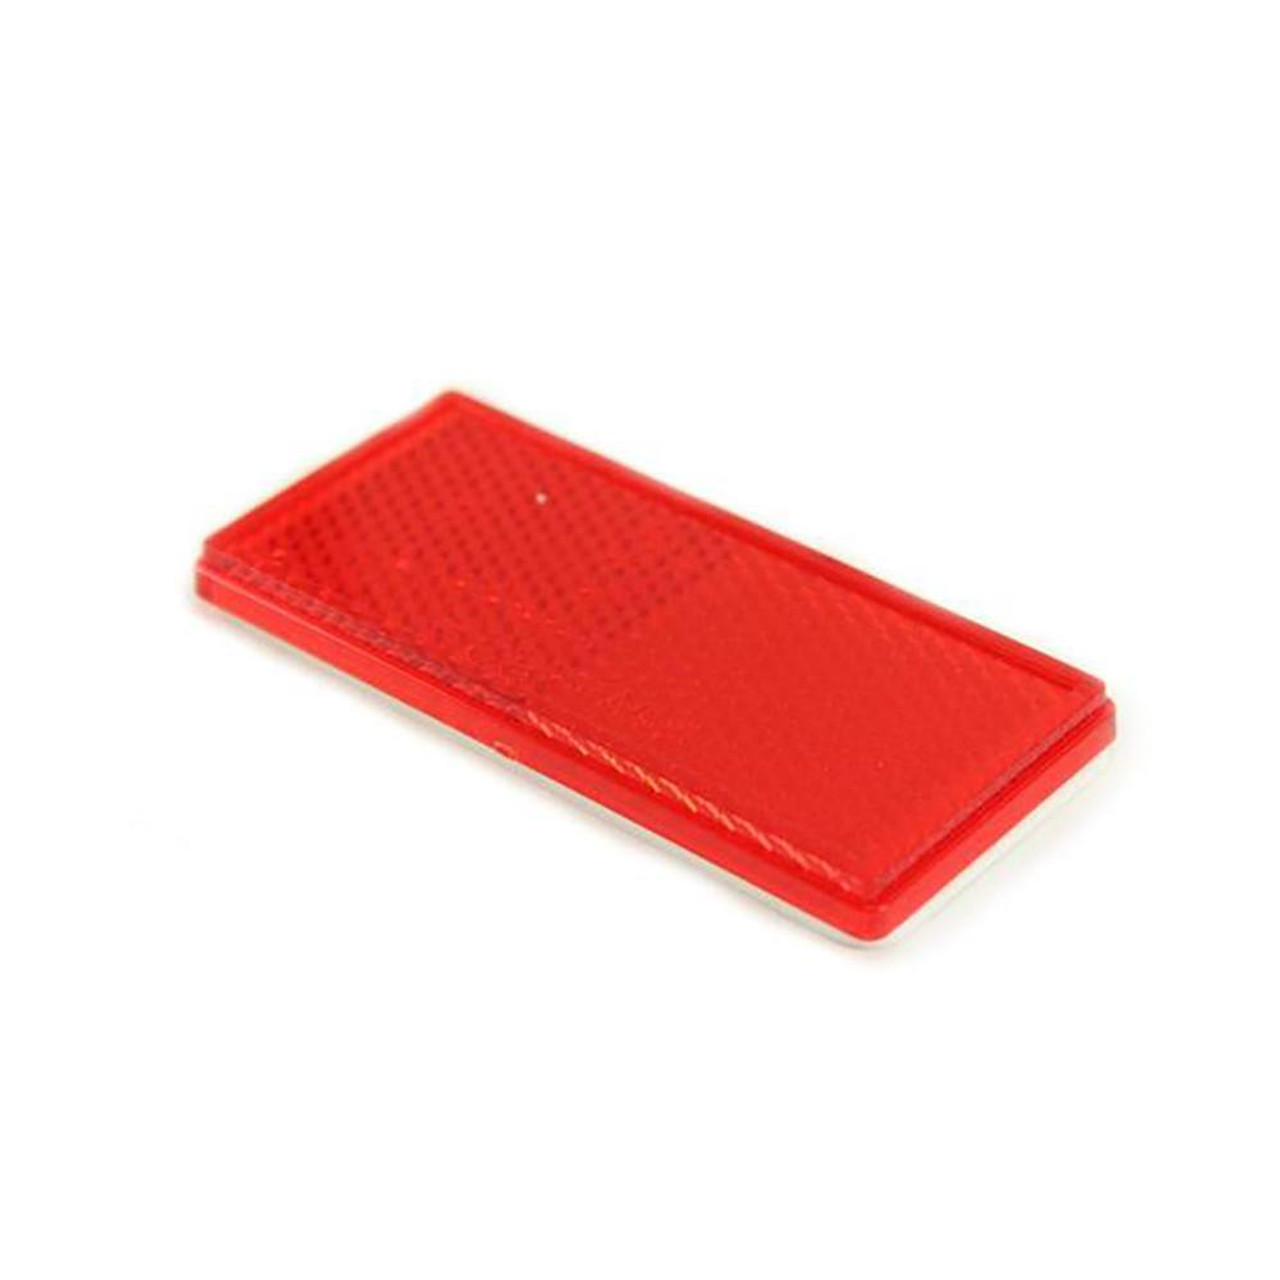 Red Stick-on Trailer Reflector